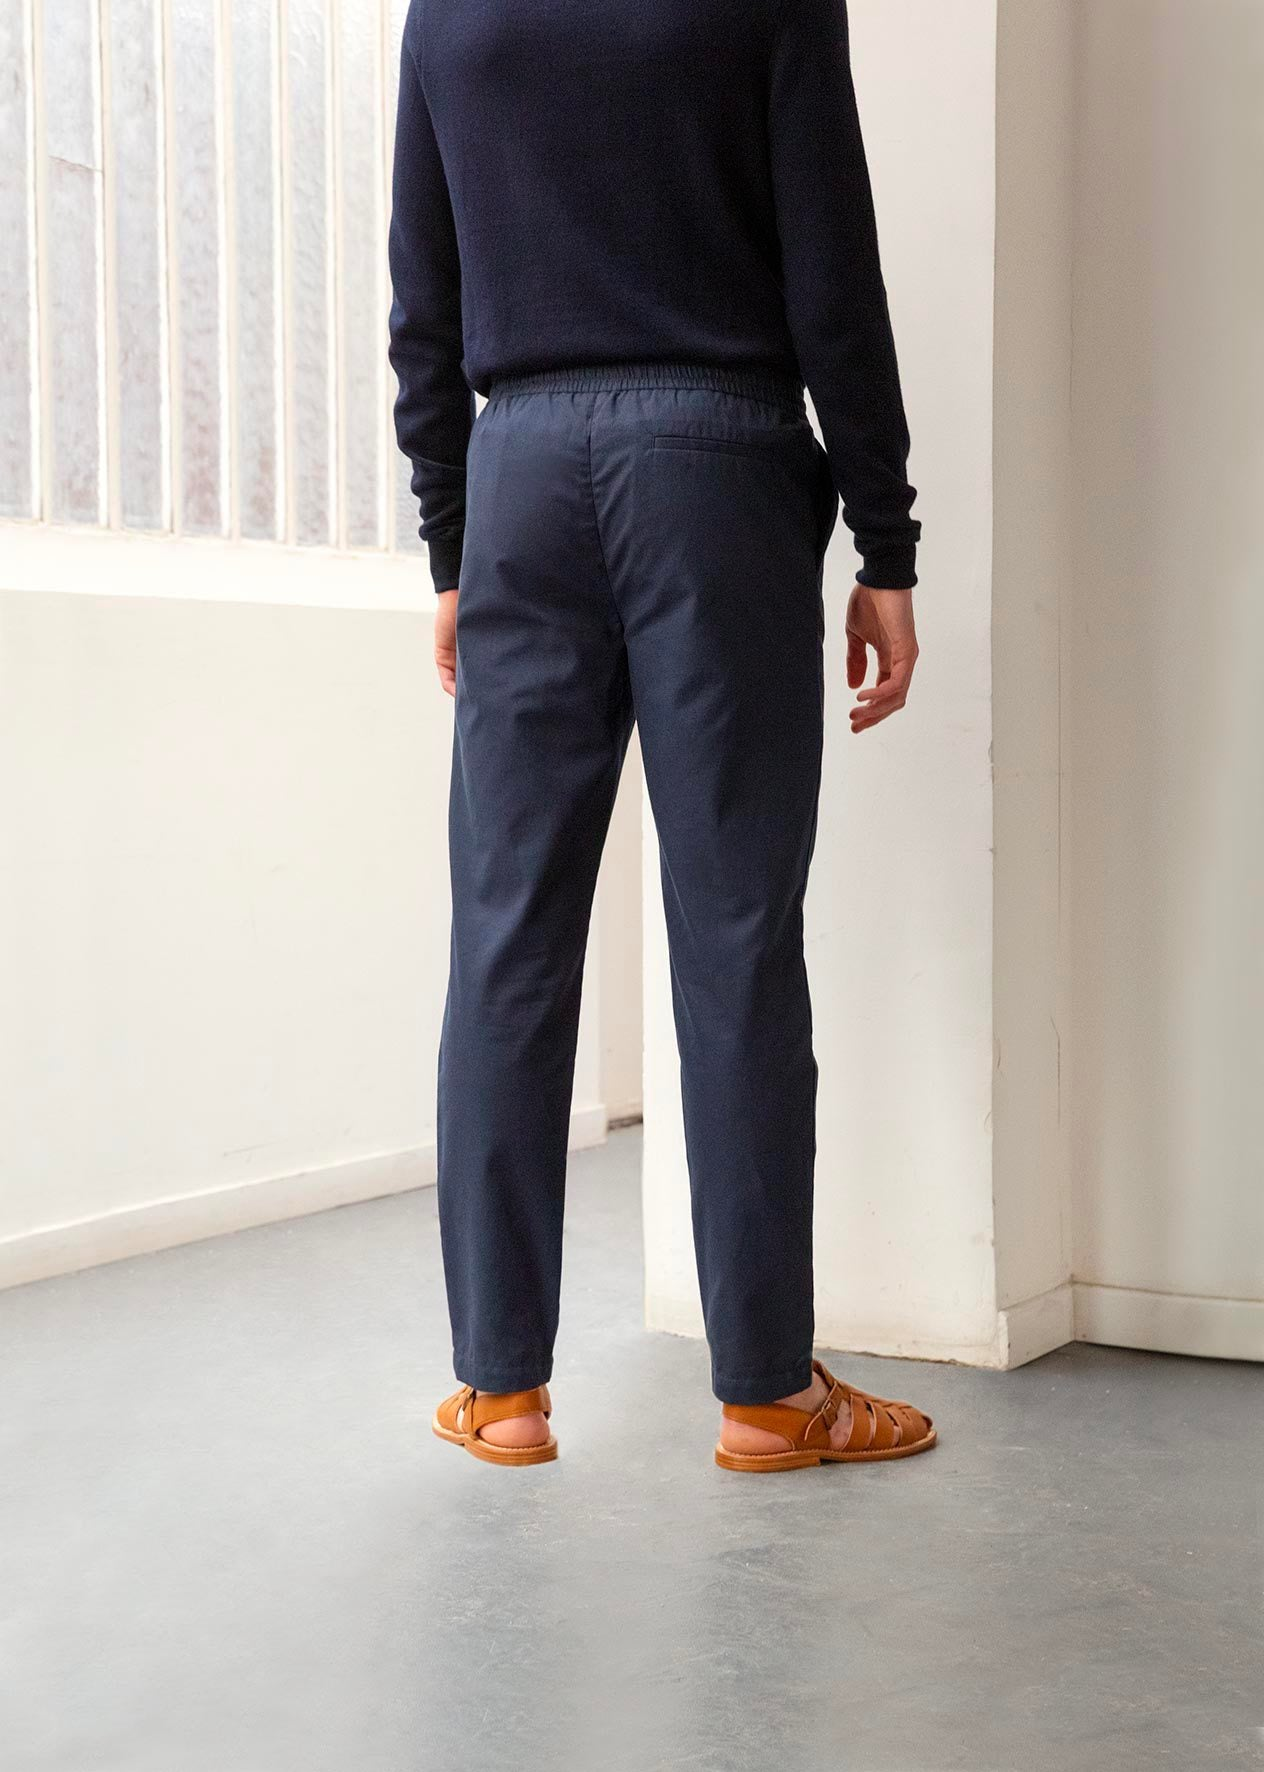 Relaxed trousers - Organic cotton twill - Navy - De Bonne Facture